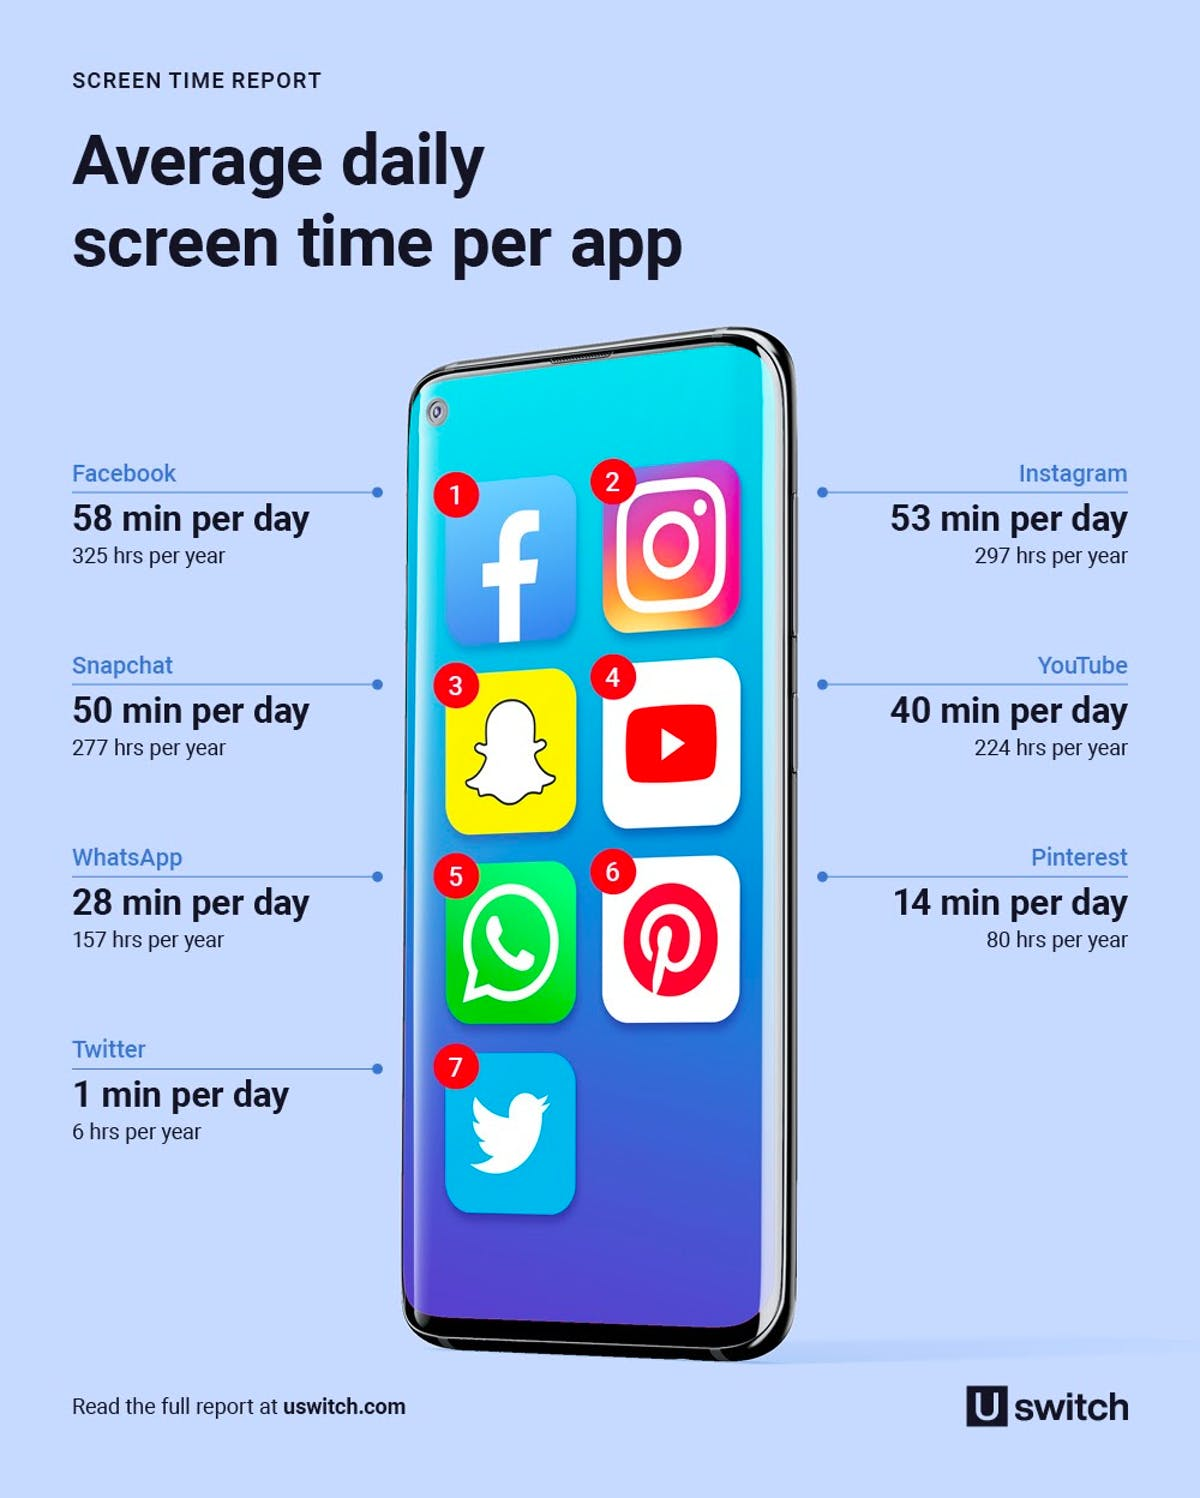 Infographic showing the average daily screen time per app